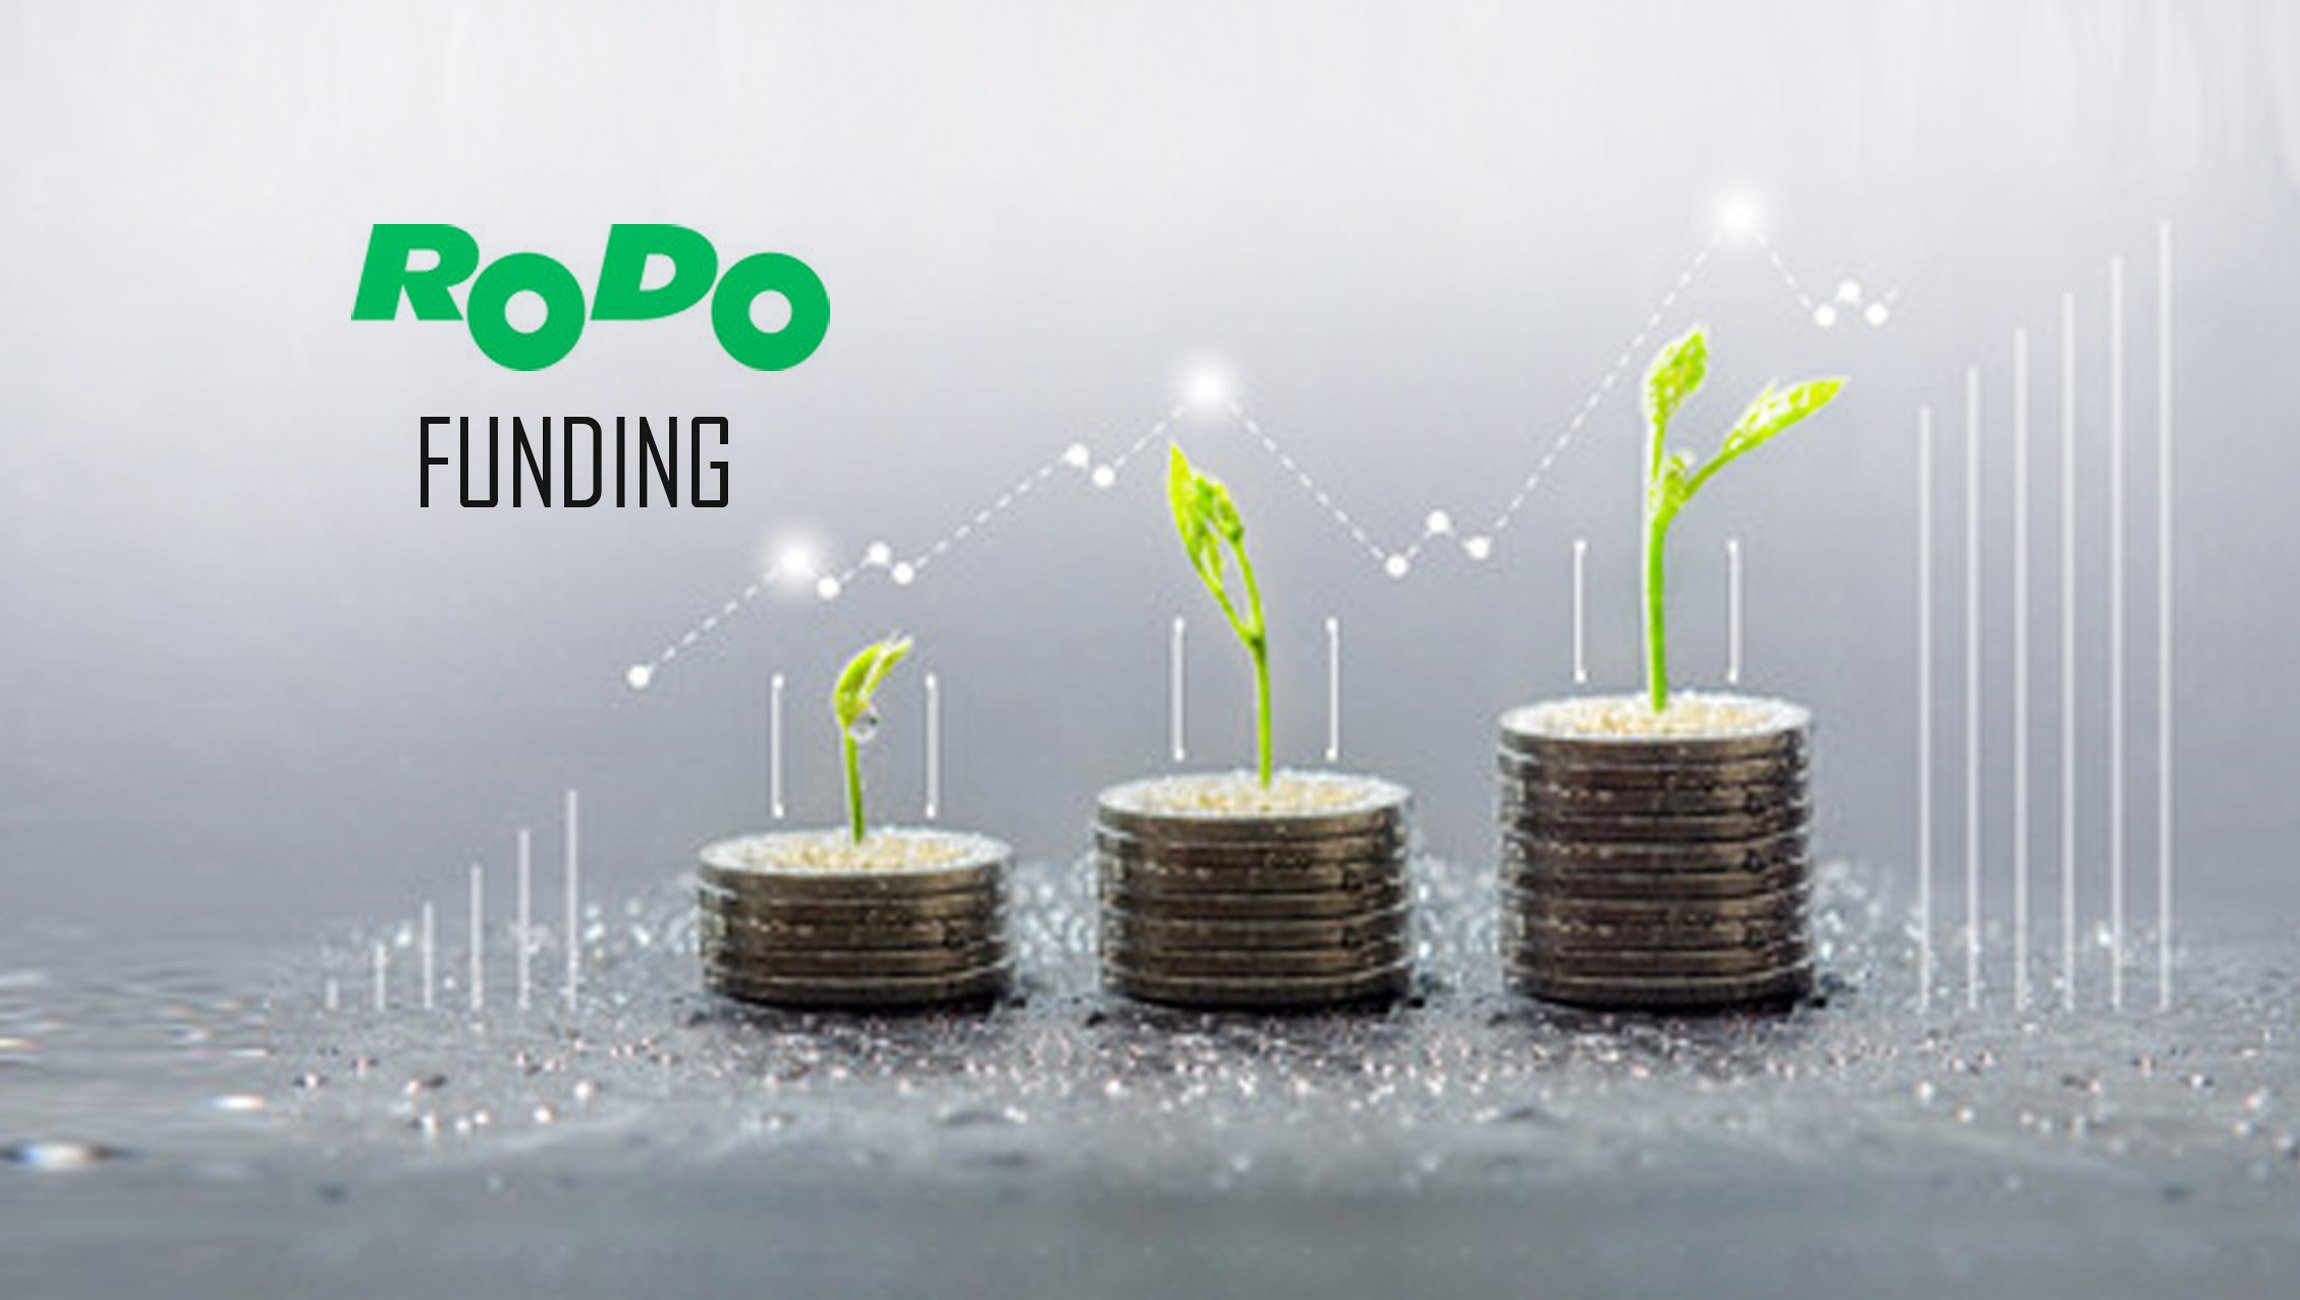 Rodo Completes $18 Million Series B Financing Exclusively Advised by The Presidio Group